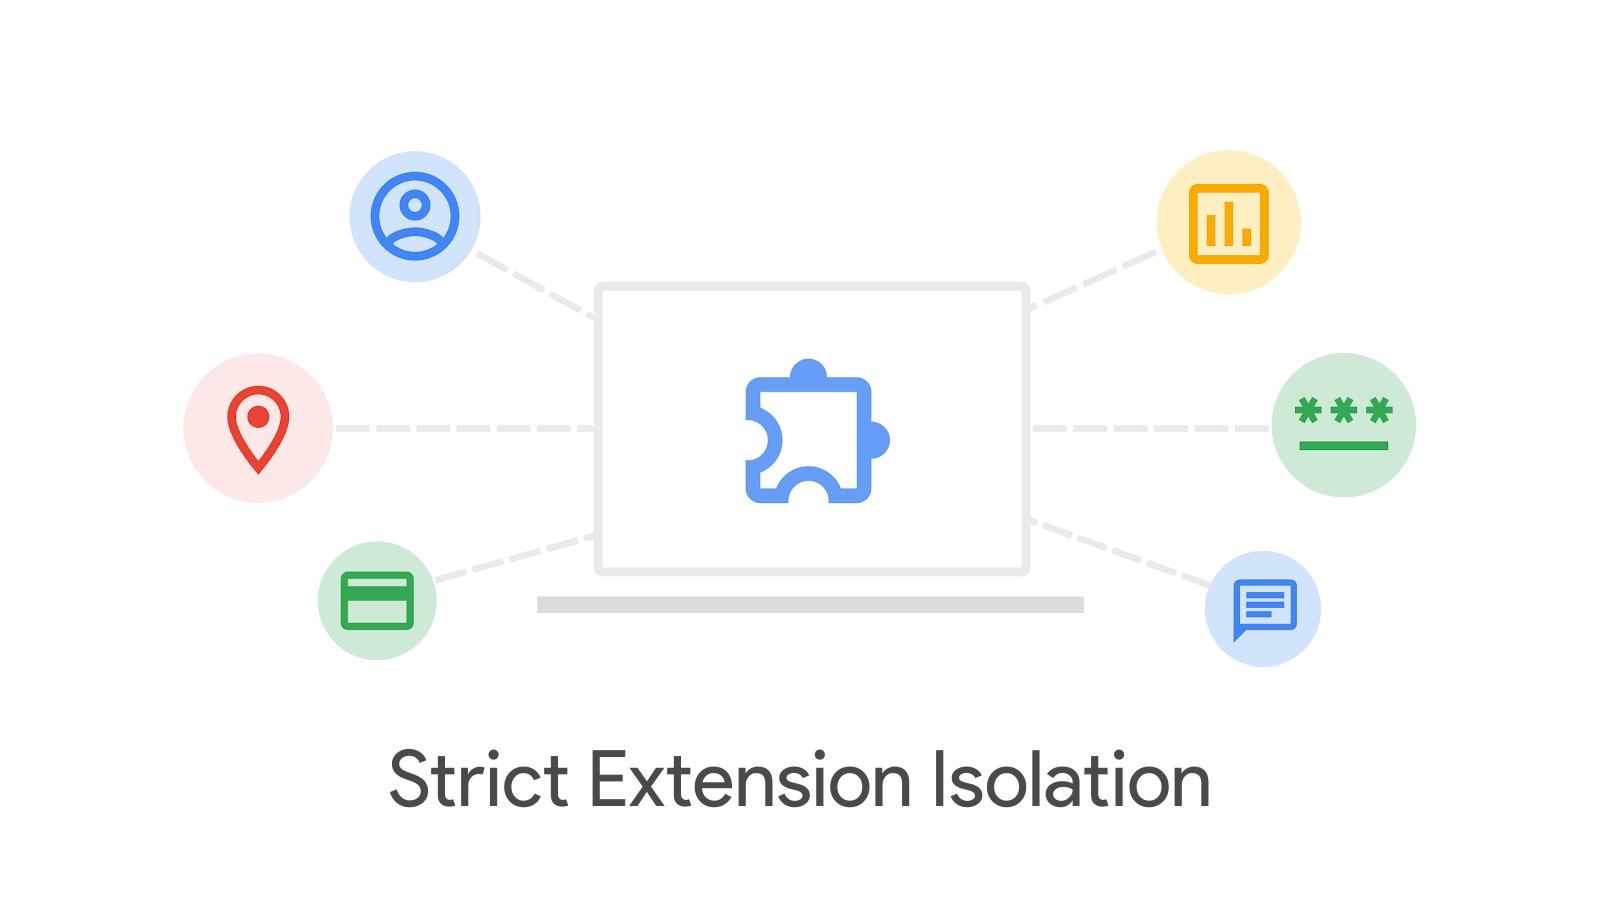 Chrome wants to make extensions more secure by preventing them from sharing processes